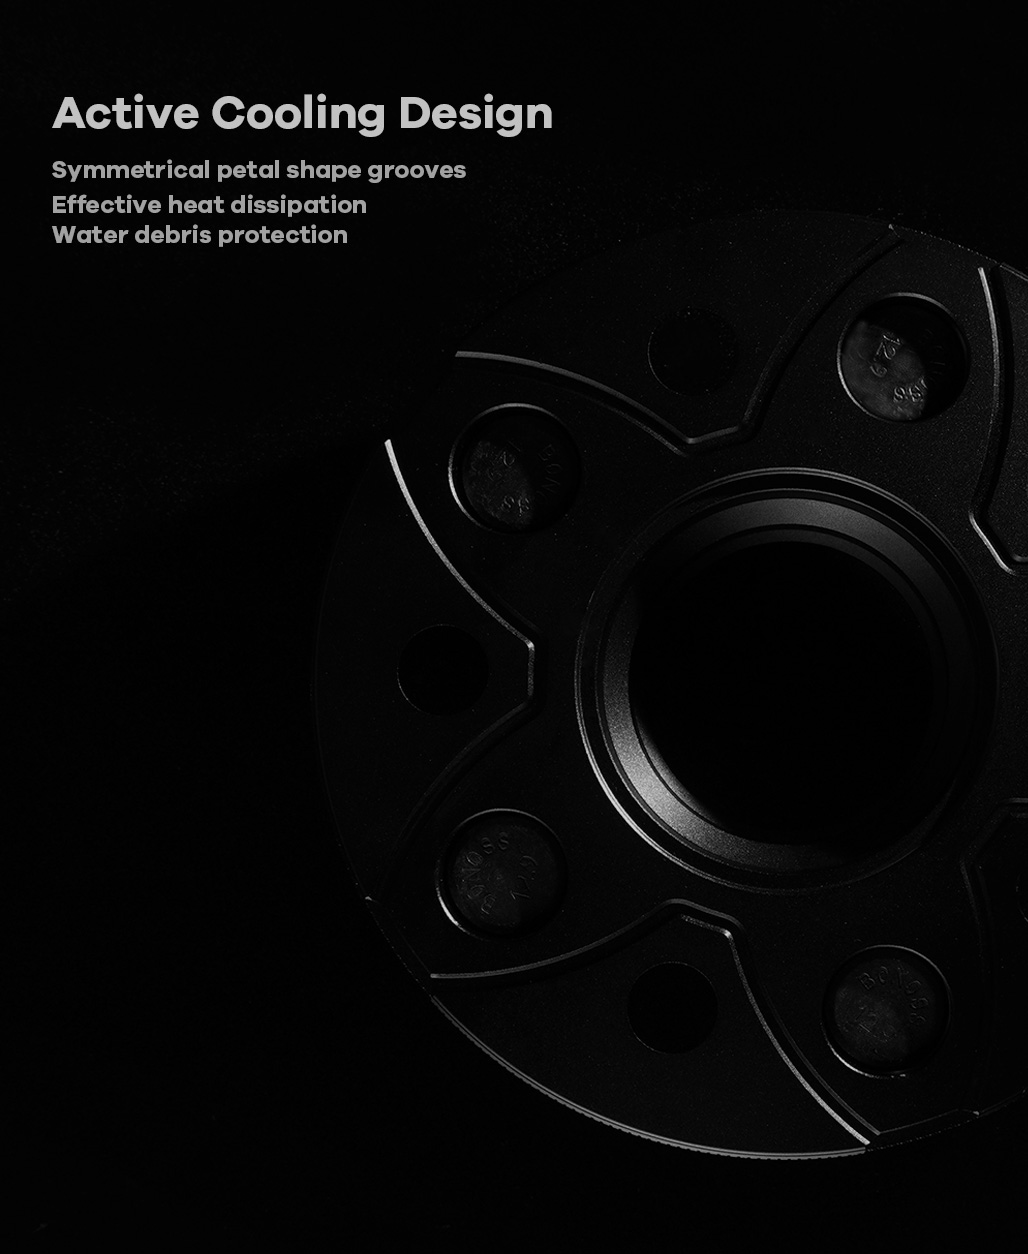 BONOSS Forged Active Cooling Wheel Spacers Hubcentric PCD5x115 CB70.3 AL7075-T6 for Holden Cruze JH.II (1.6iTi) 2015-2016 (3)